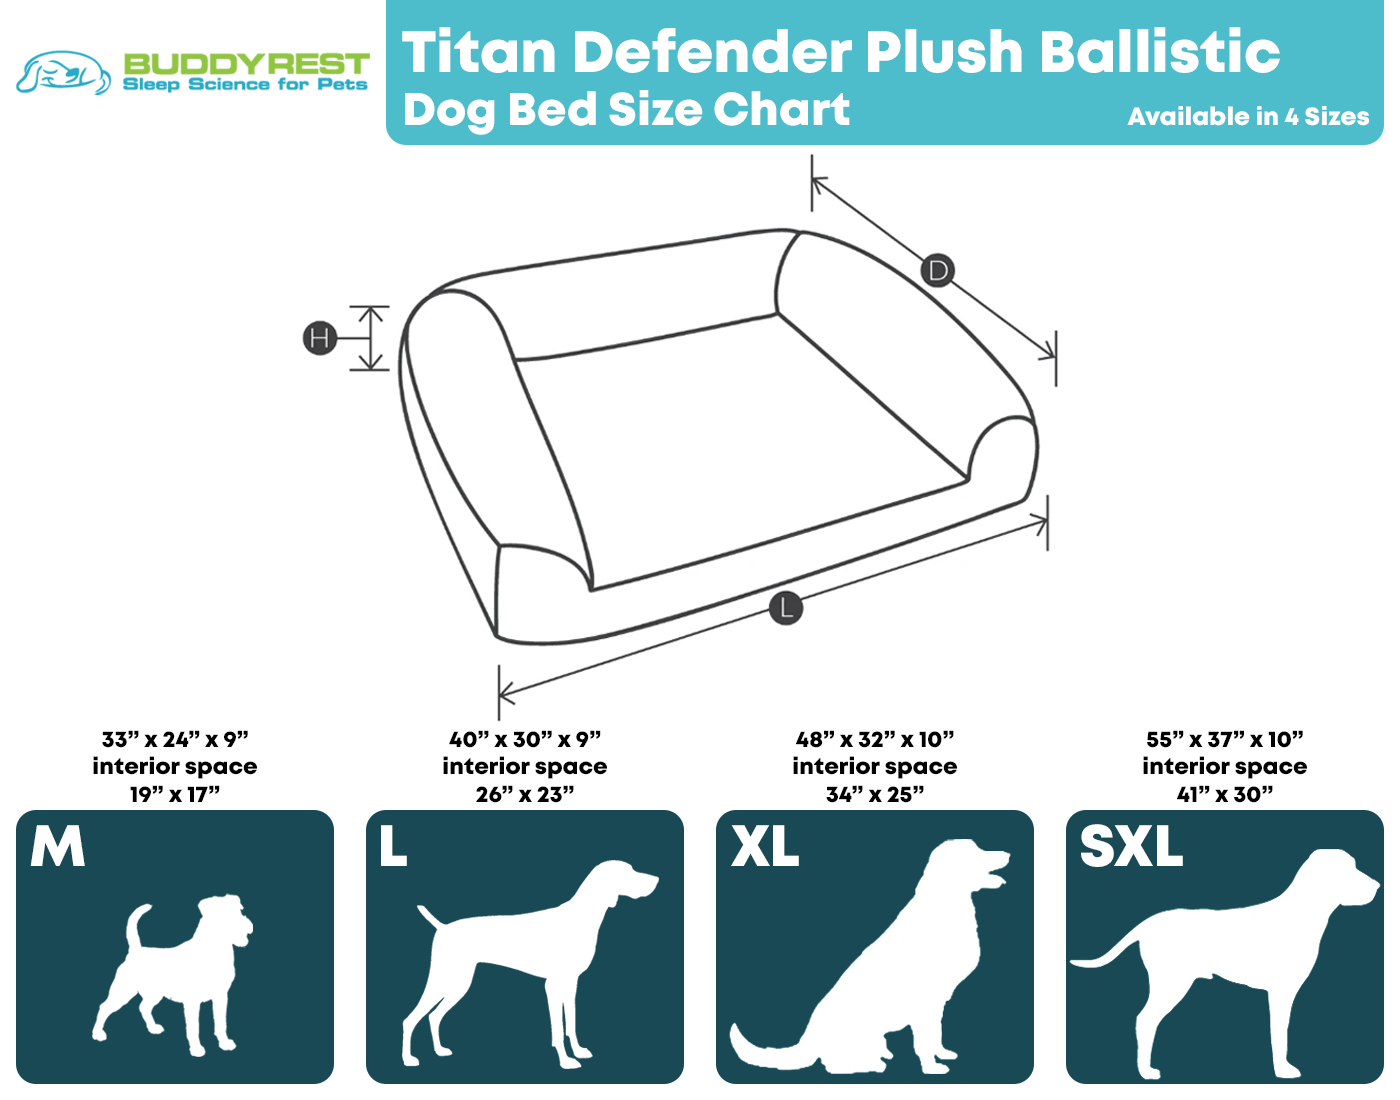 Titan Defender Dog Bed Size Chart